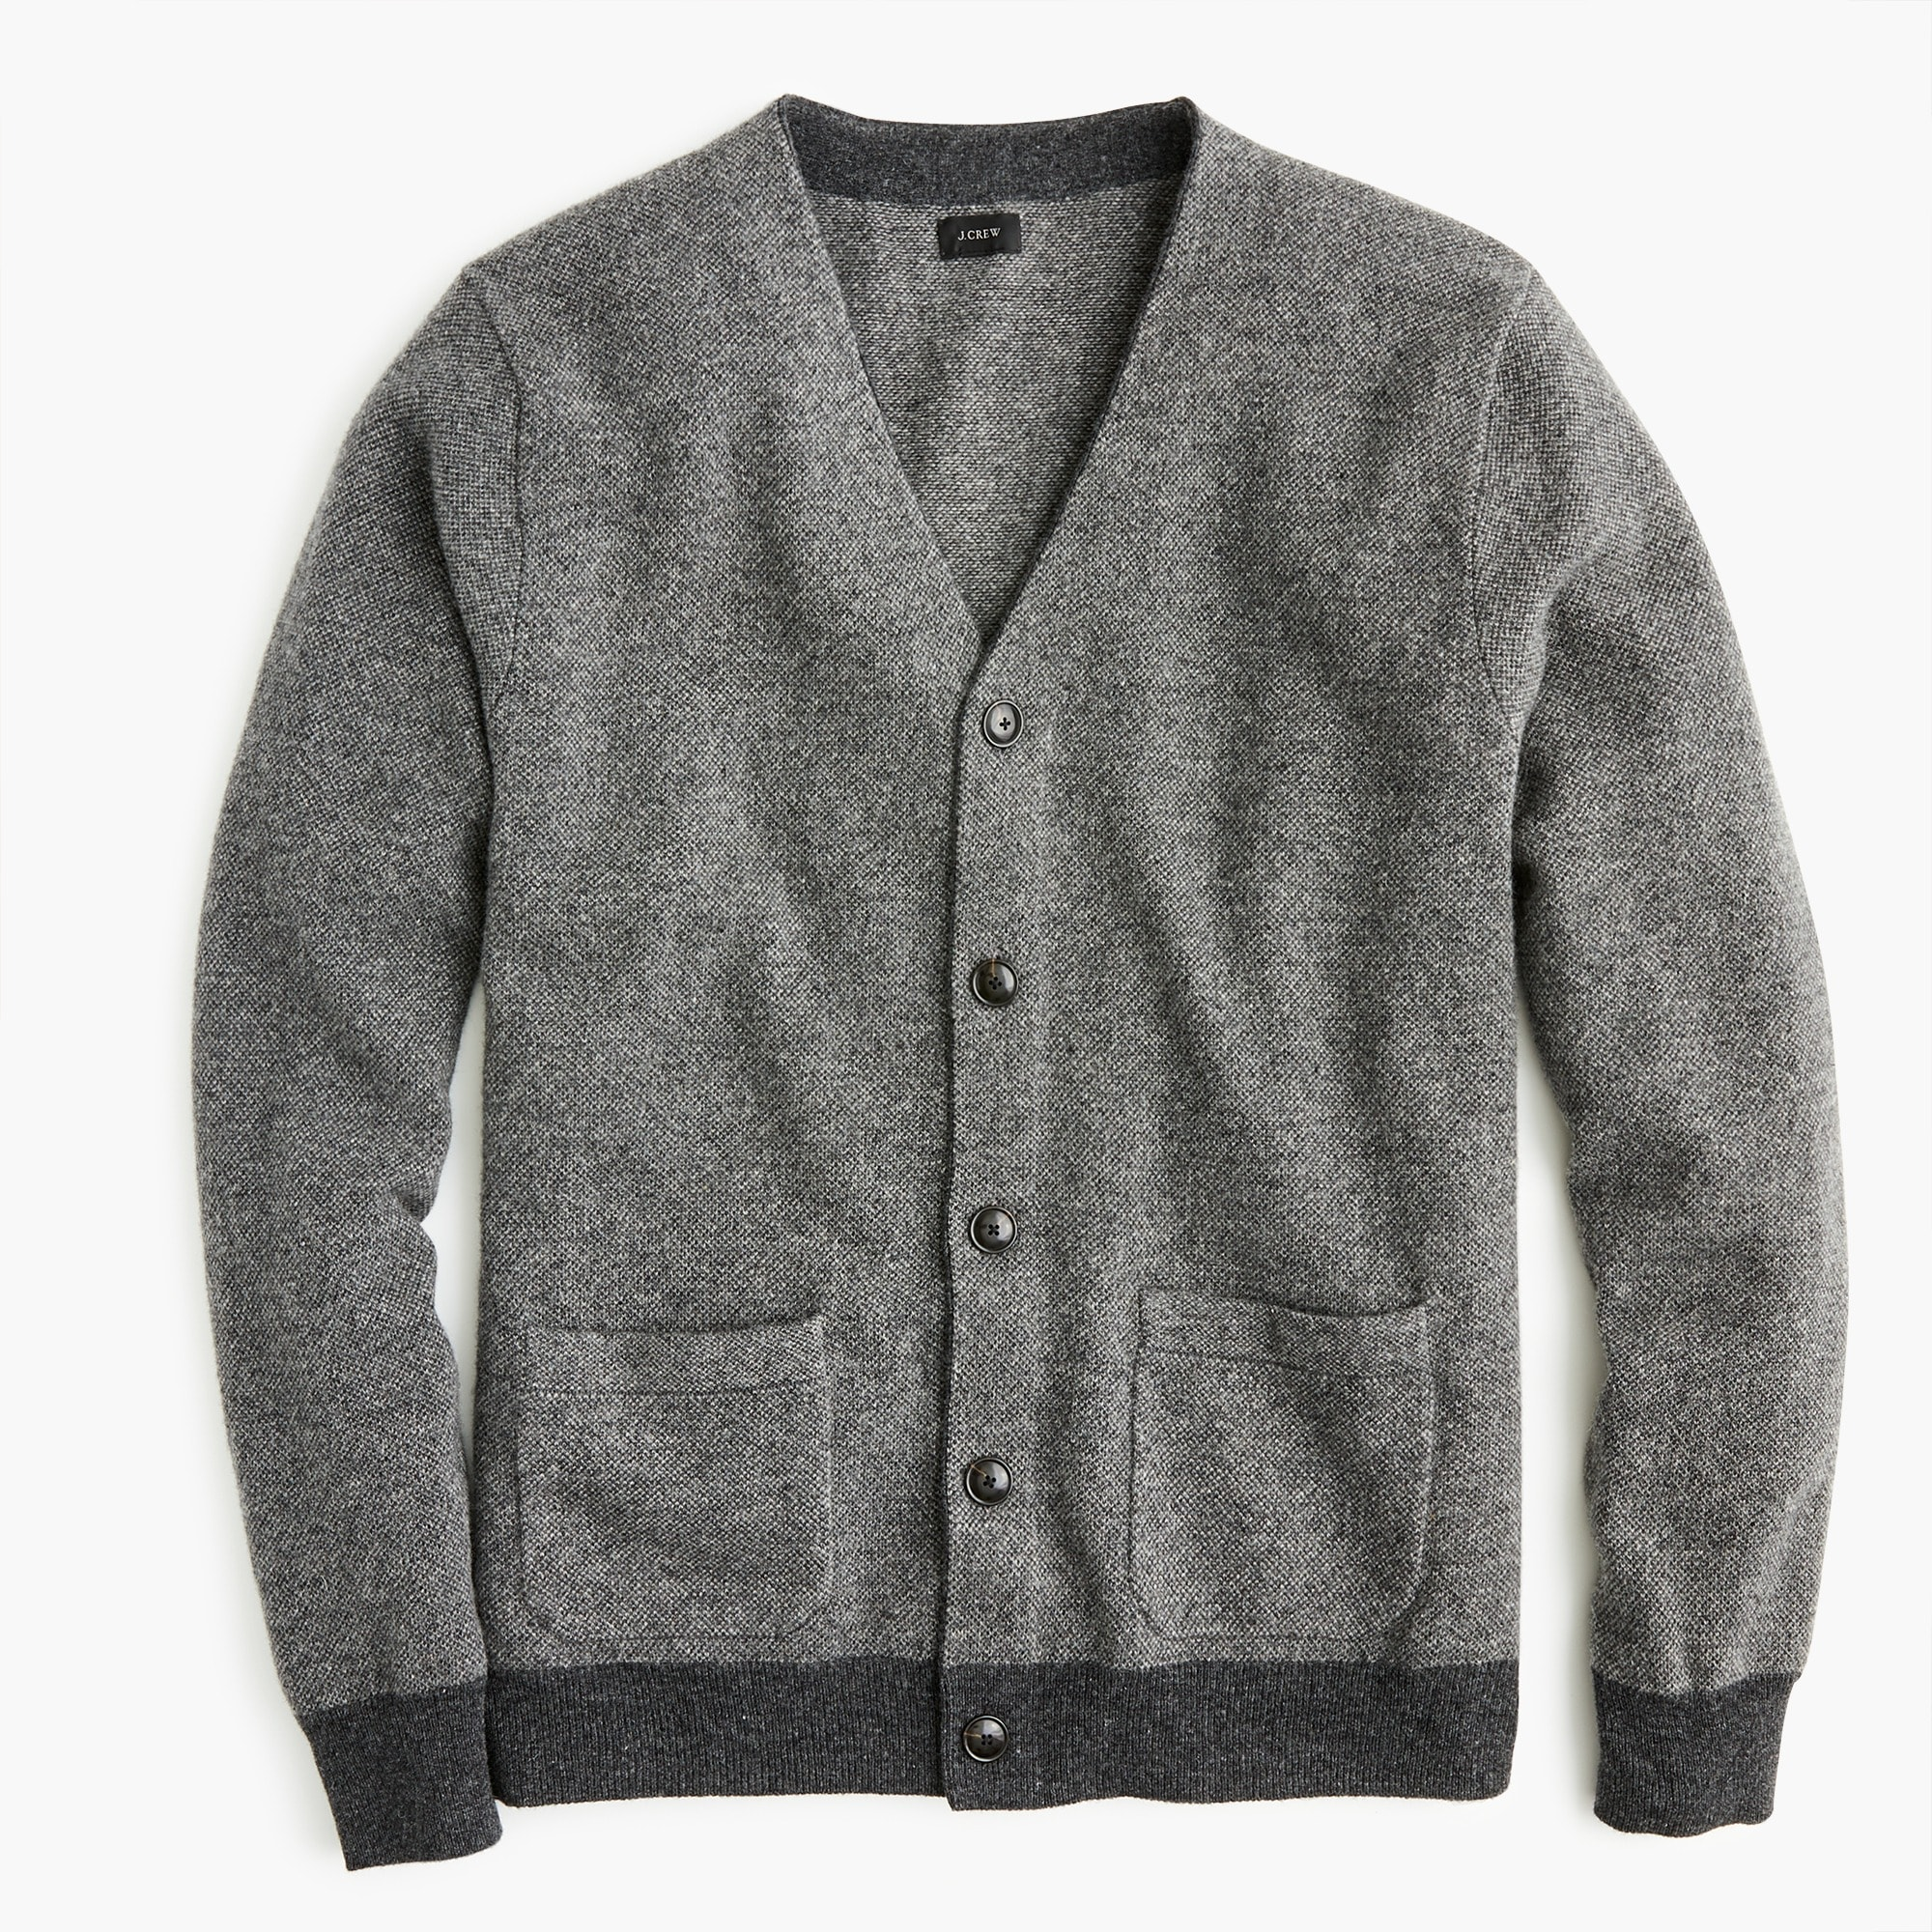 American lambswool bird's-eye cardigan sweater